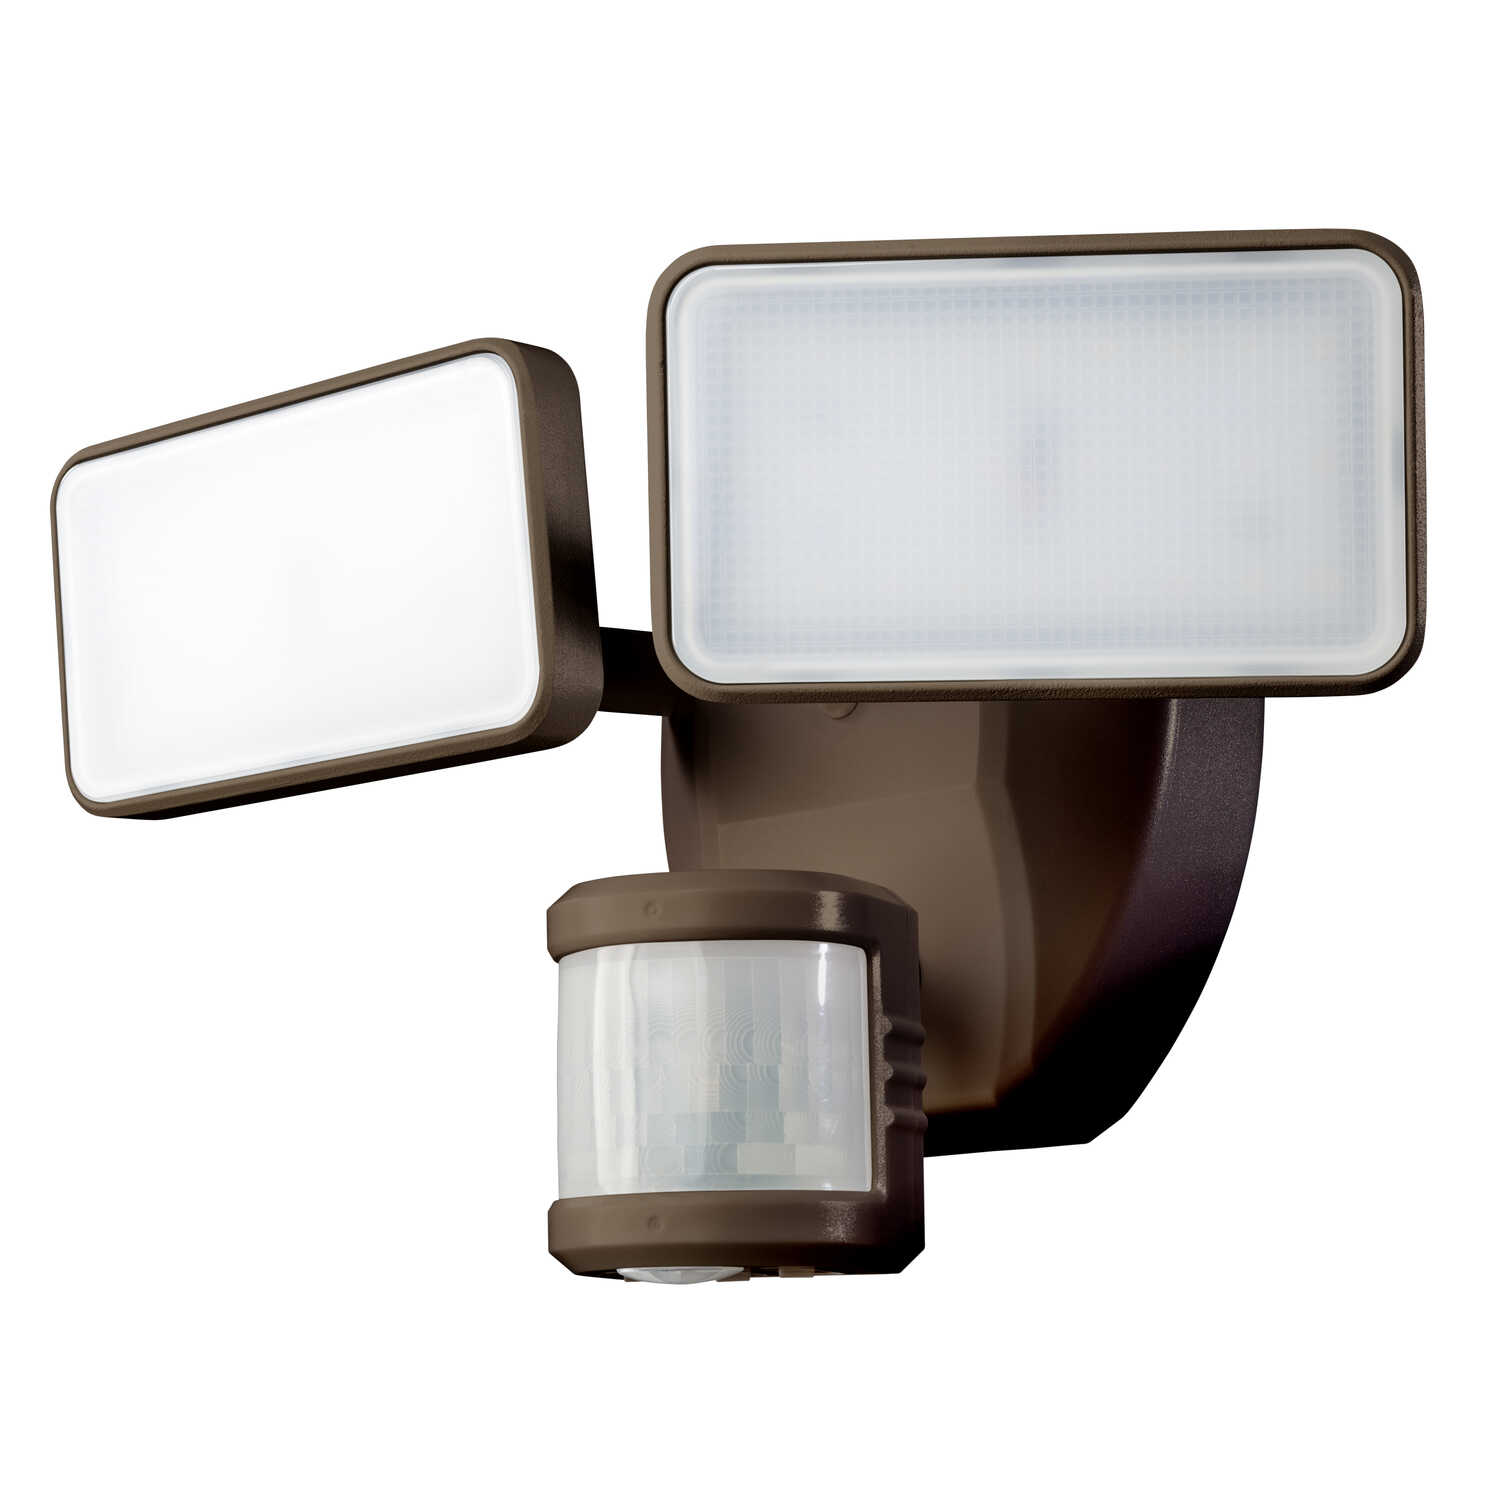 Heathco  Hardwired  LED  Bronze  Motion-Sensing  Plastic  Security Wall Light